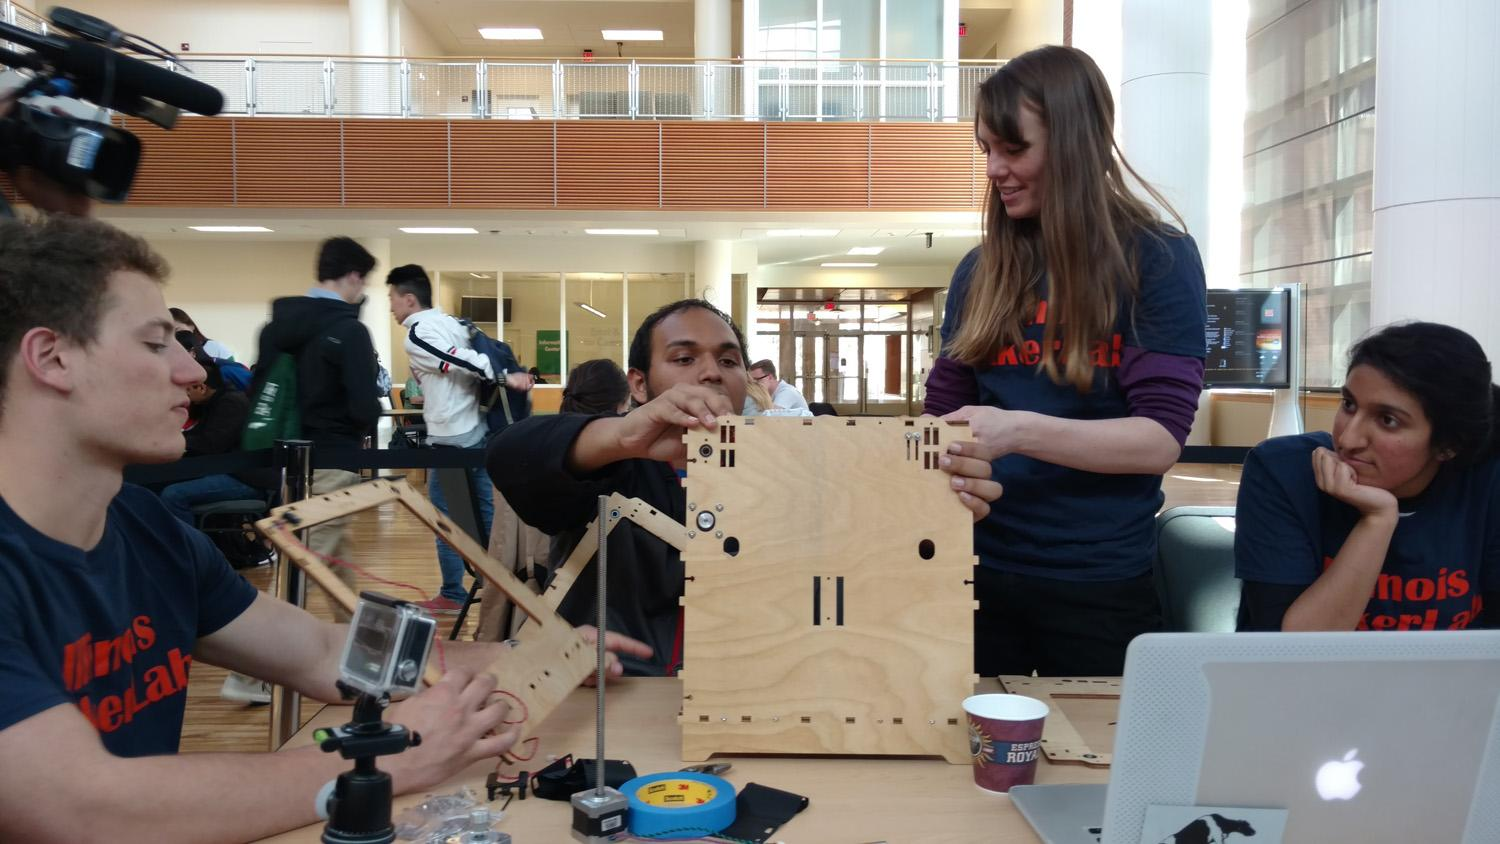 Students participate in the 3D Printer build event at the Business Instructional Facility on March 30, 2016. The event was held to help promote the rise of 3D printing and modeling.